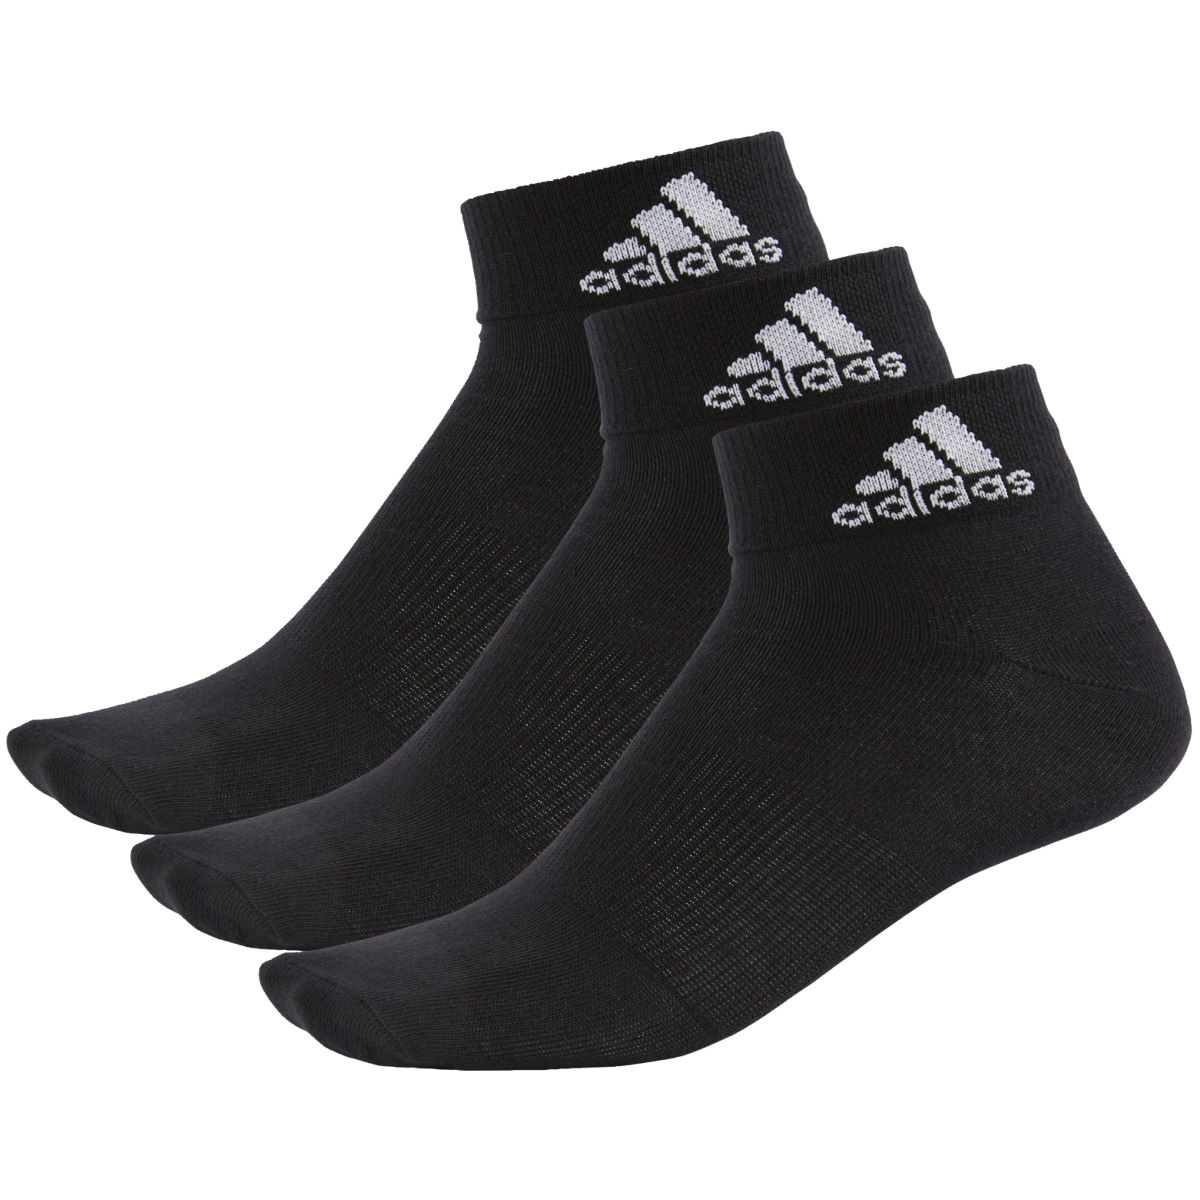 Chaussettes Adidas Performance (3 paires) - 11 - 14